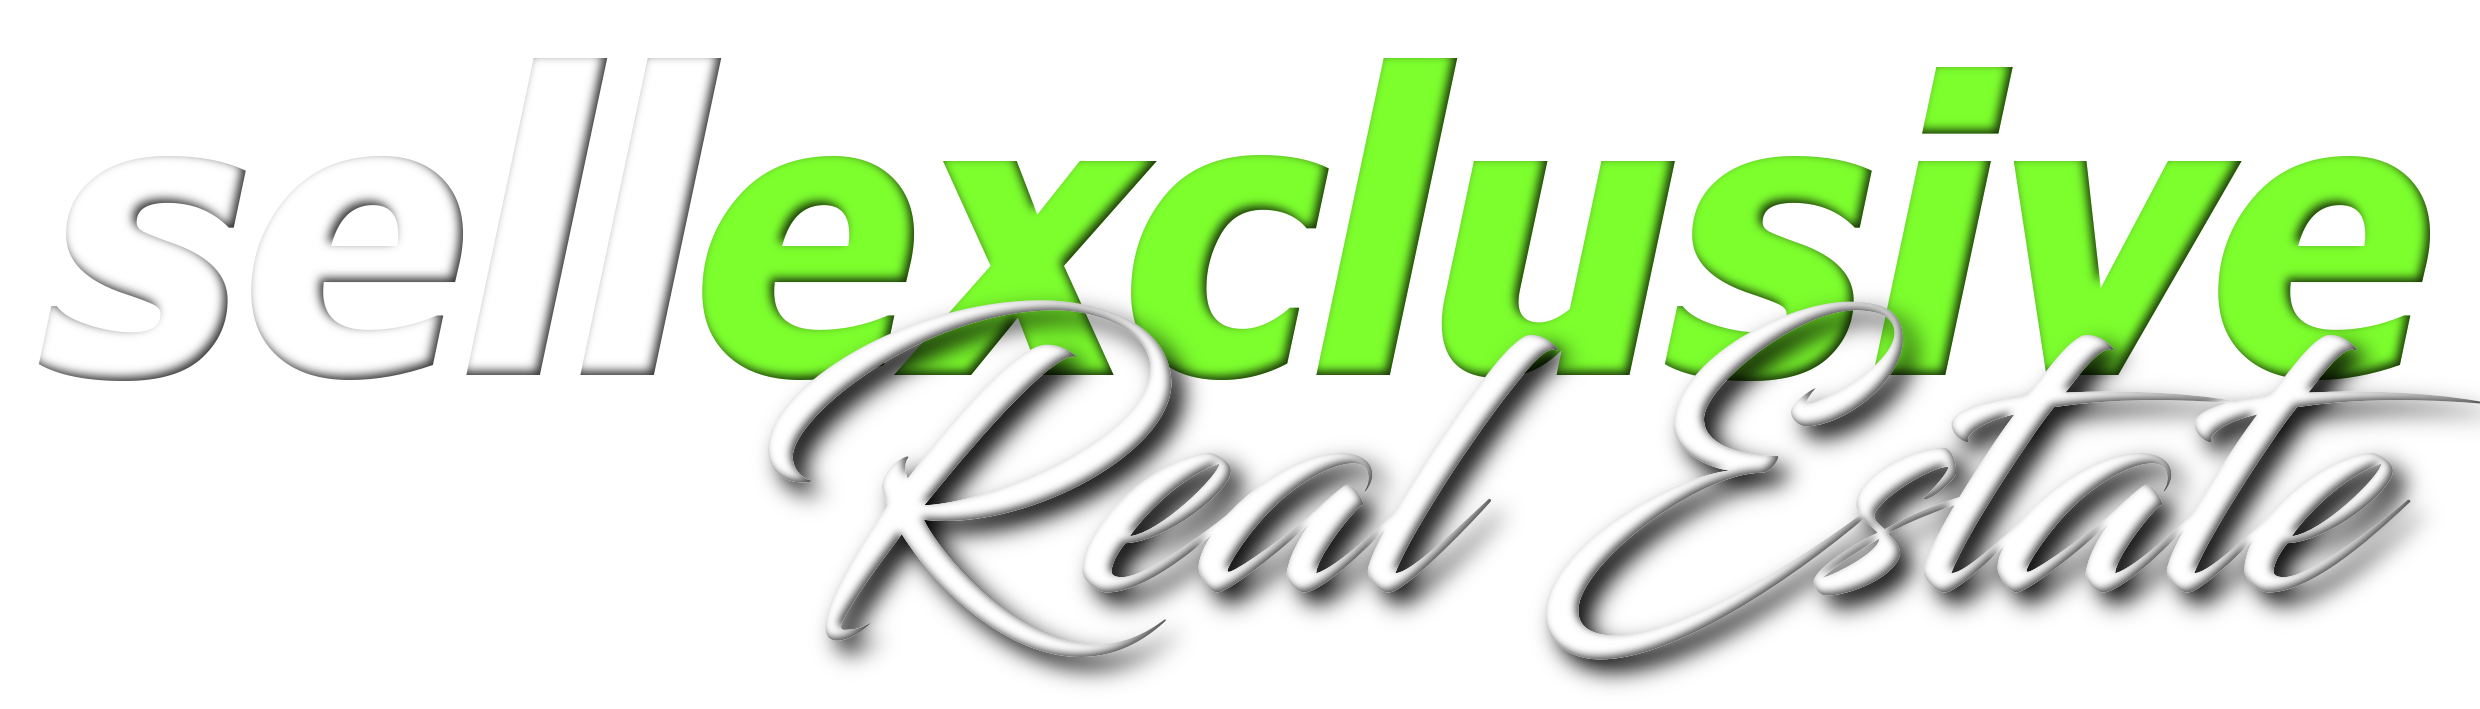 Sell Exclusive Real Estate - logo